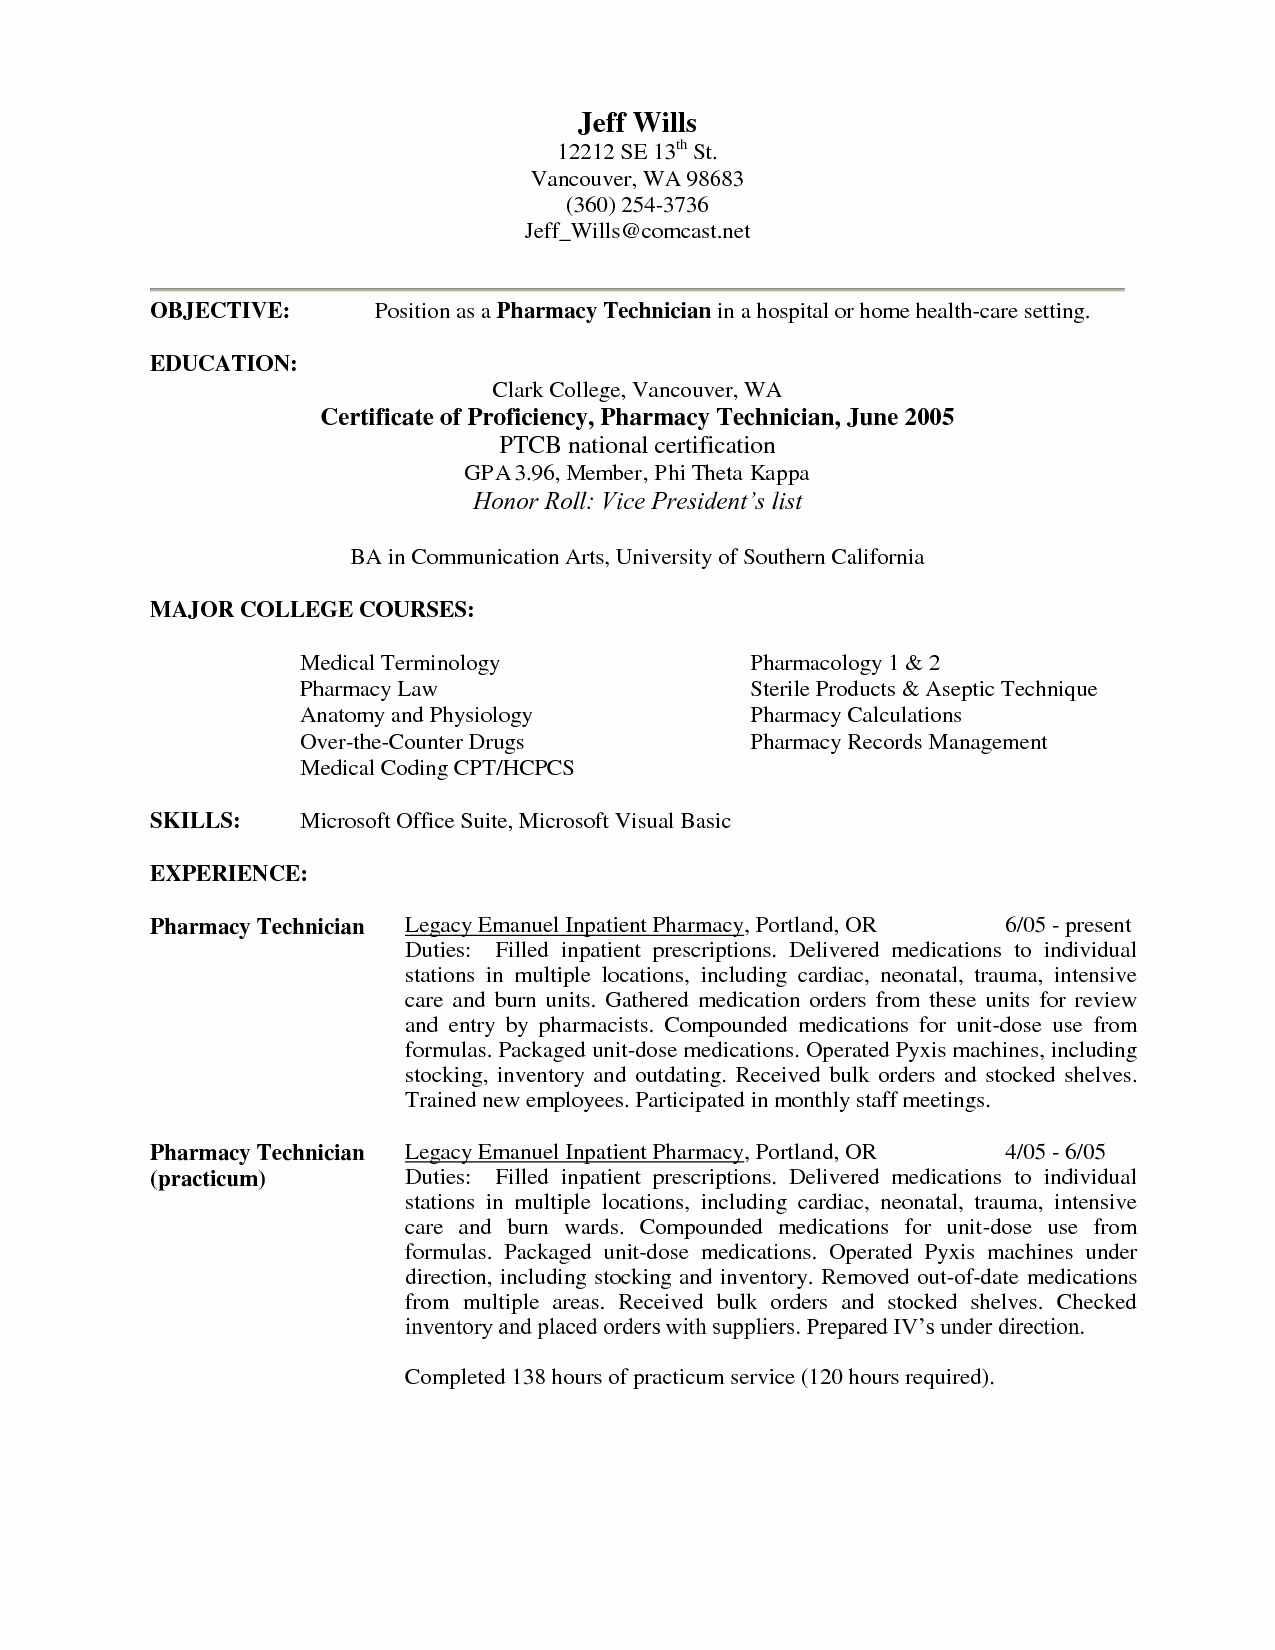 Pharmacy Technician Resume Objective Elegant Pharmacy Technician Objective Resume Samples Cpht